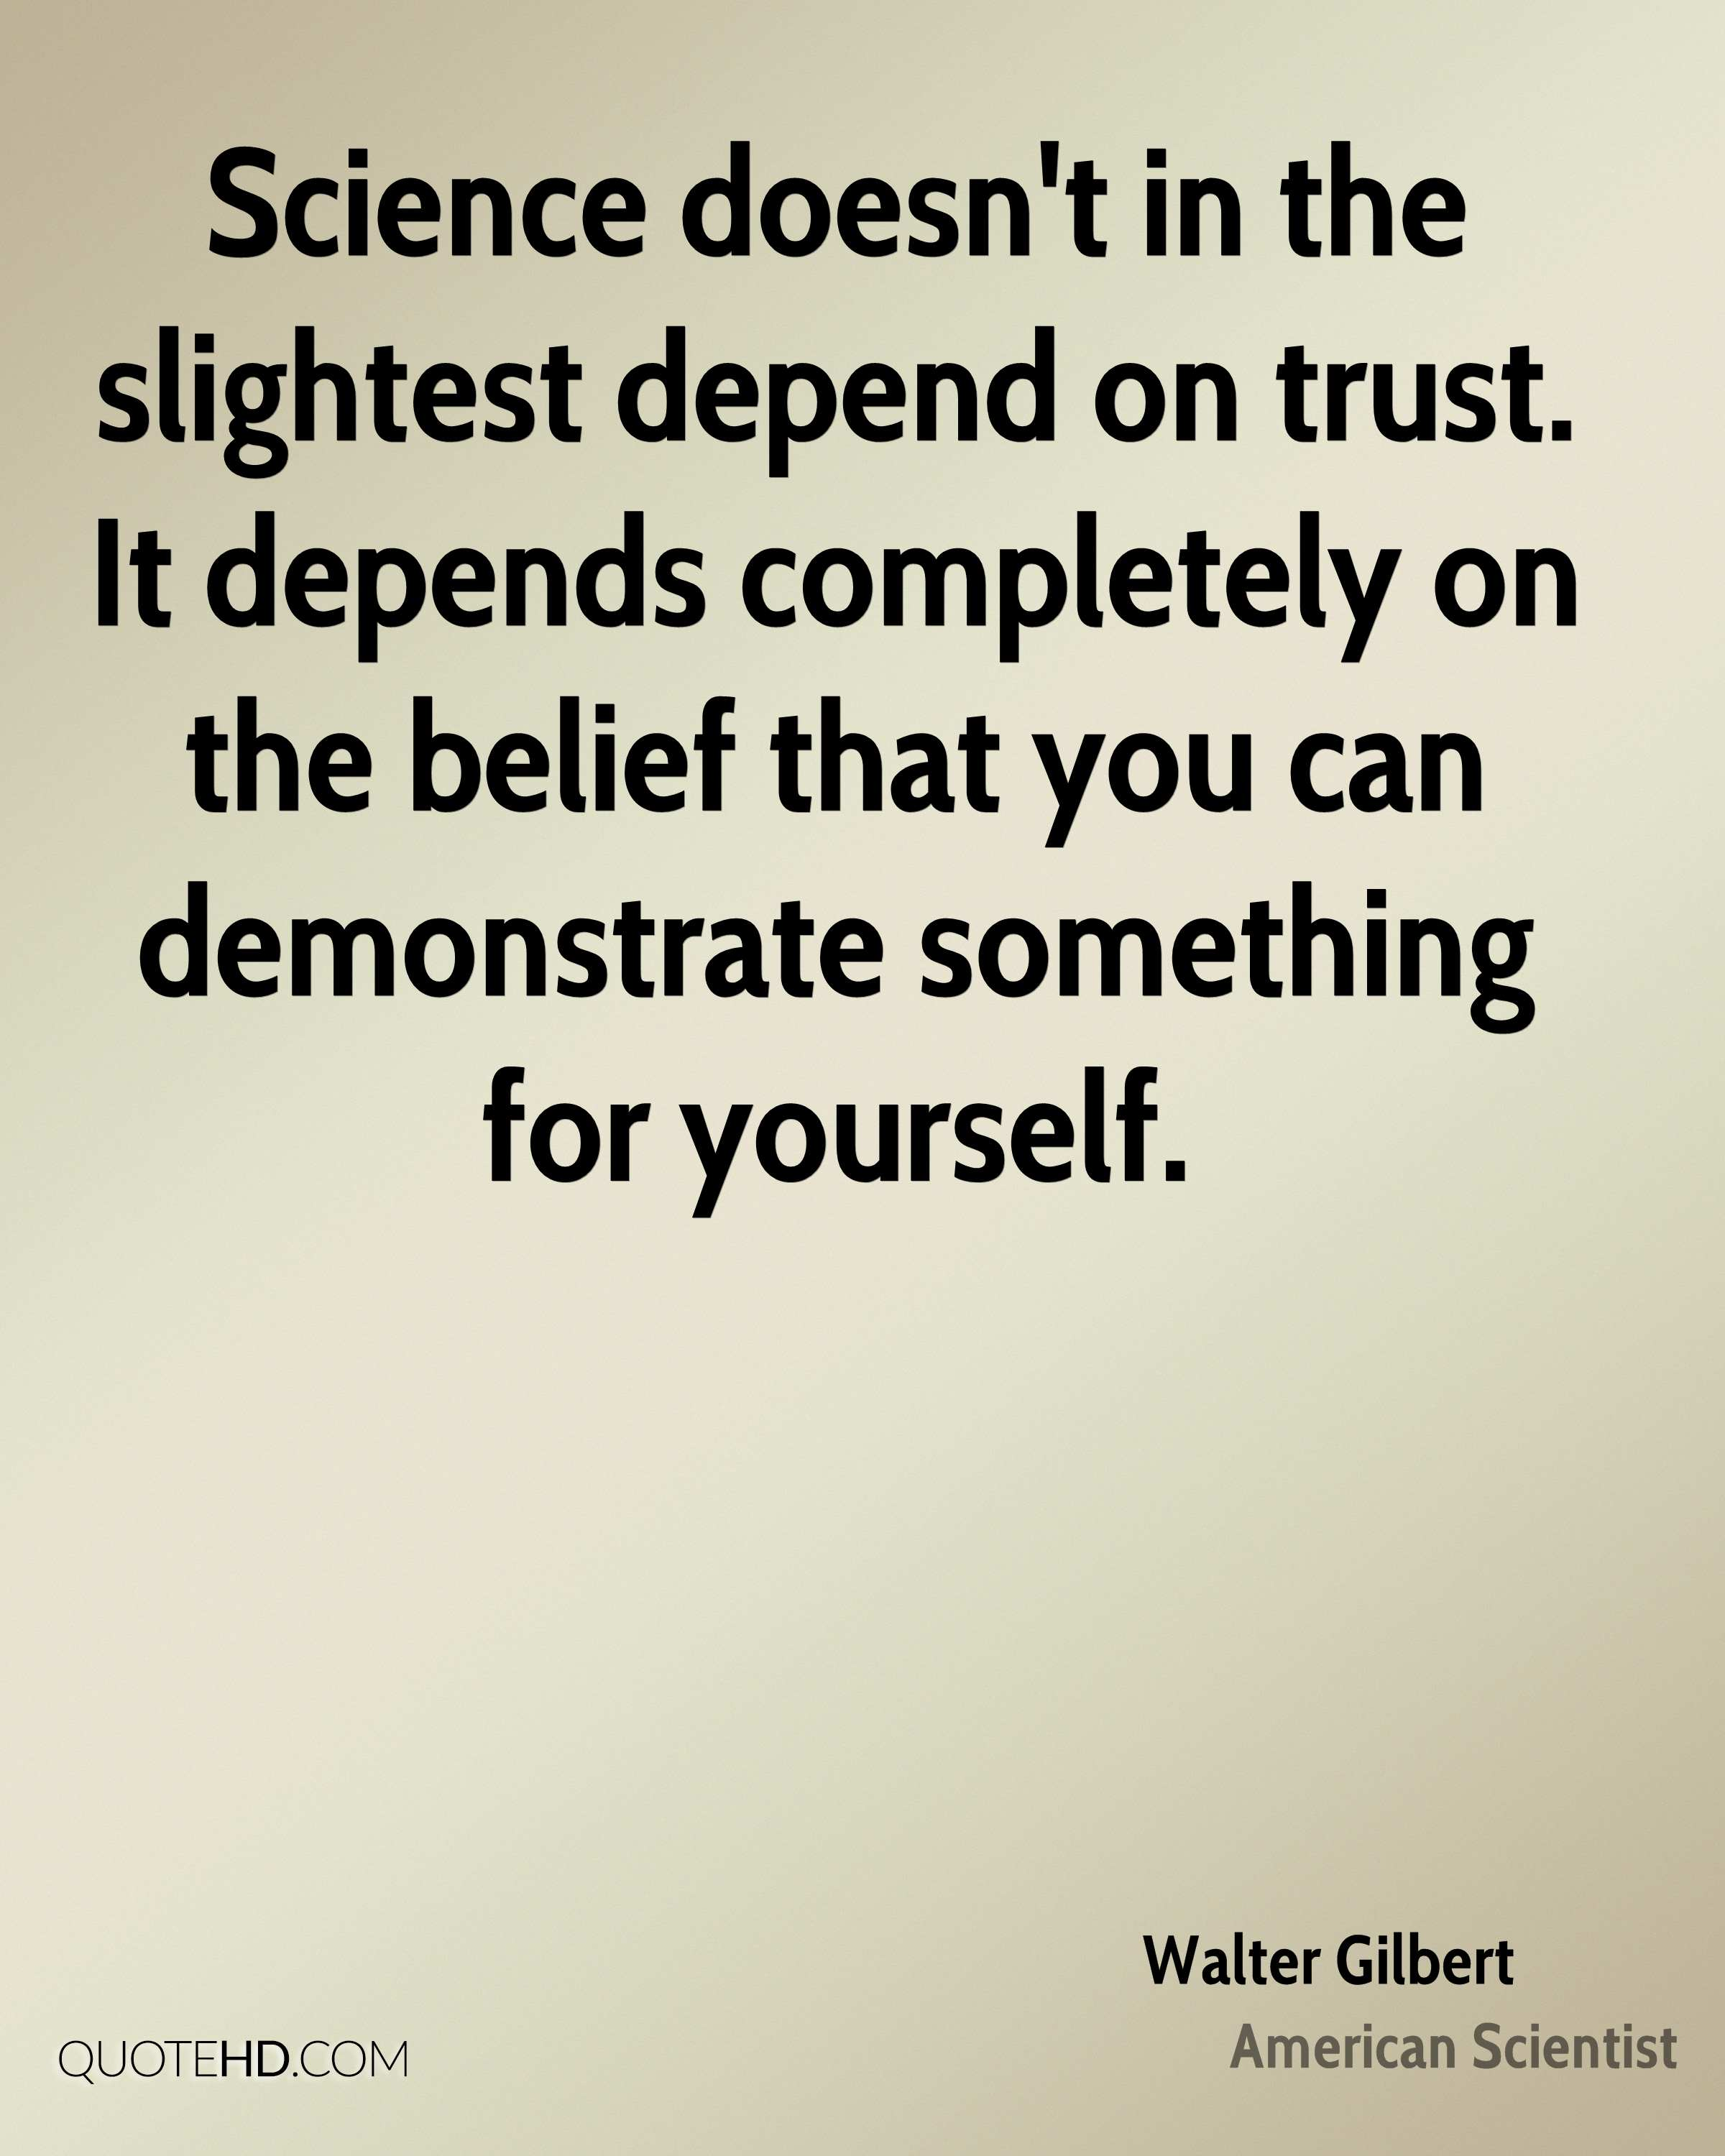 Science doesn't in the slightest depend on trust. It depends completely on the belief that you can demonstrate something for yourself.